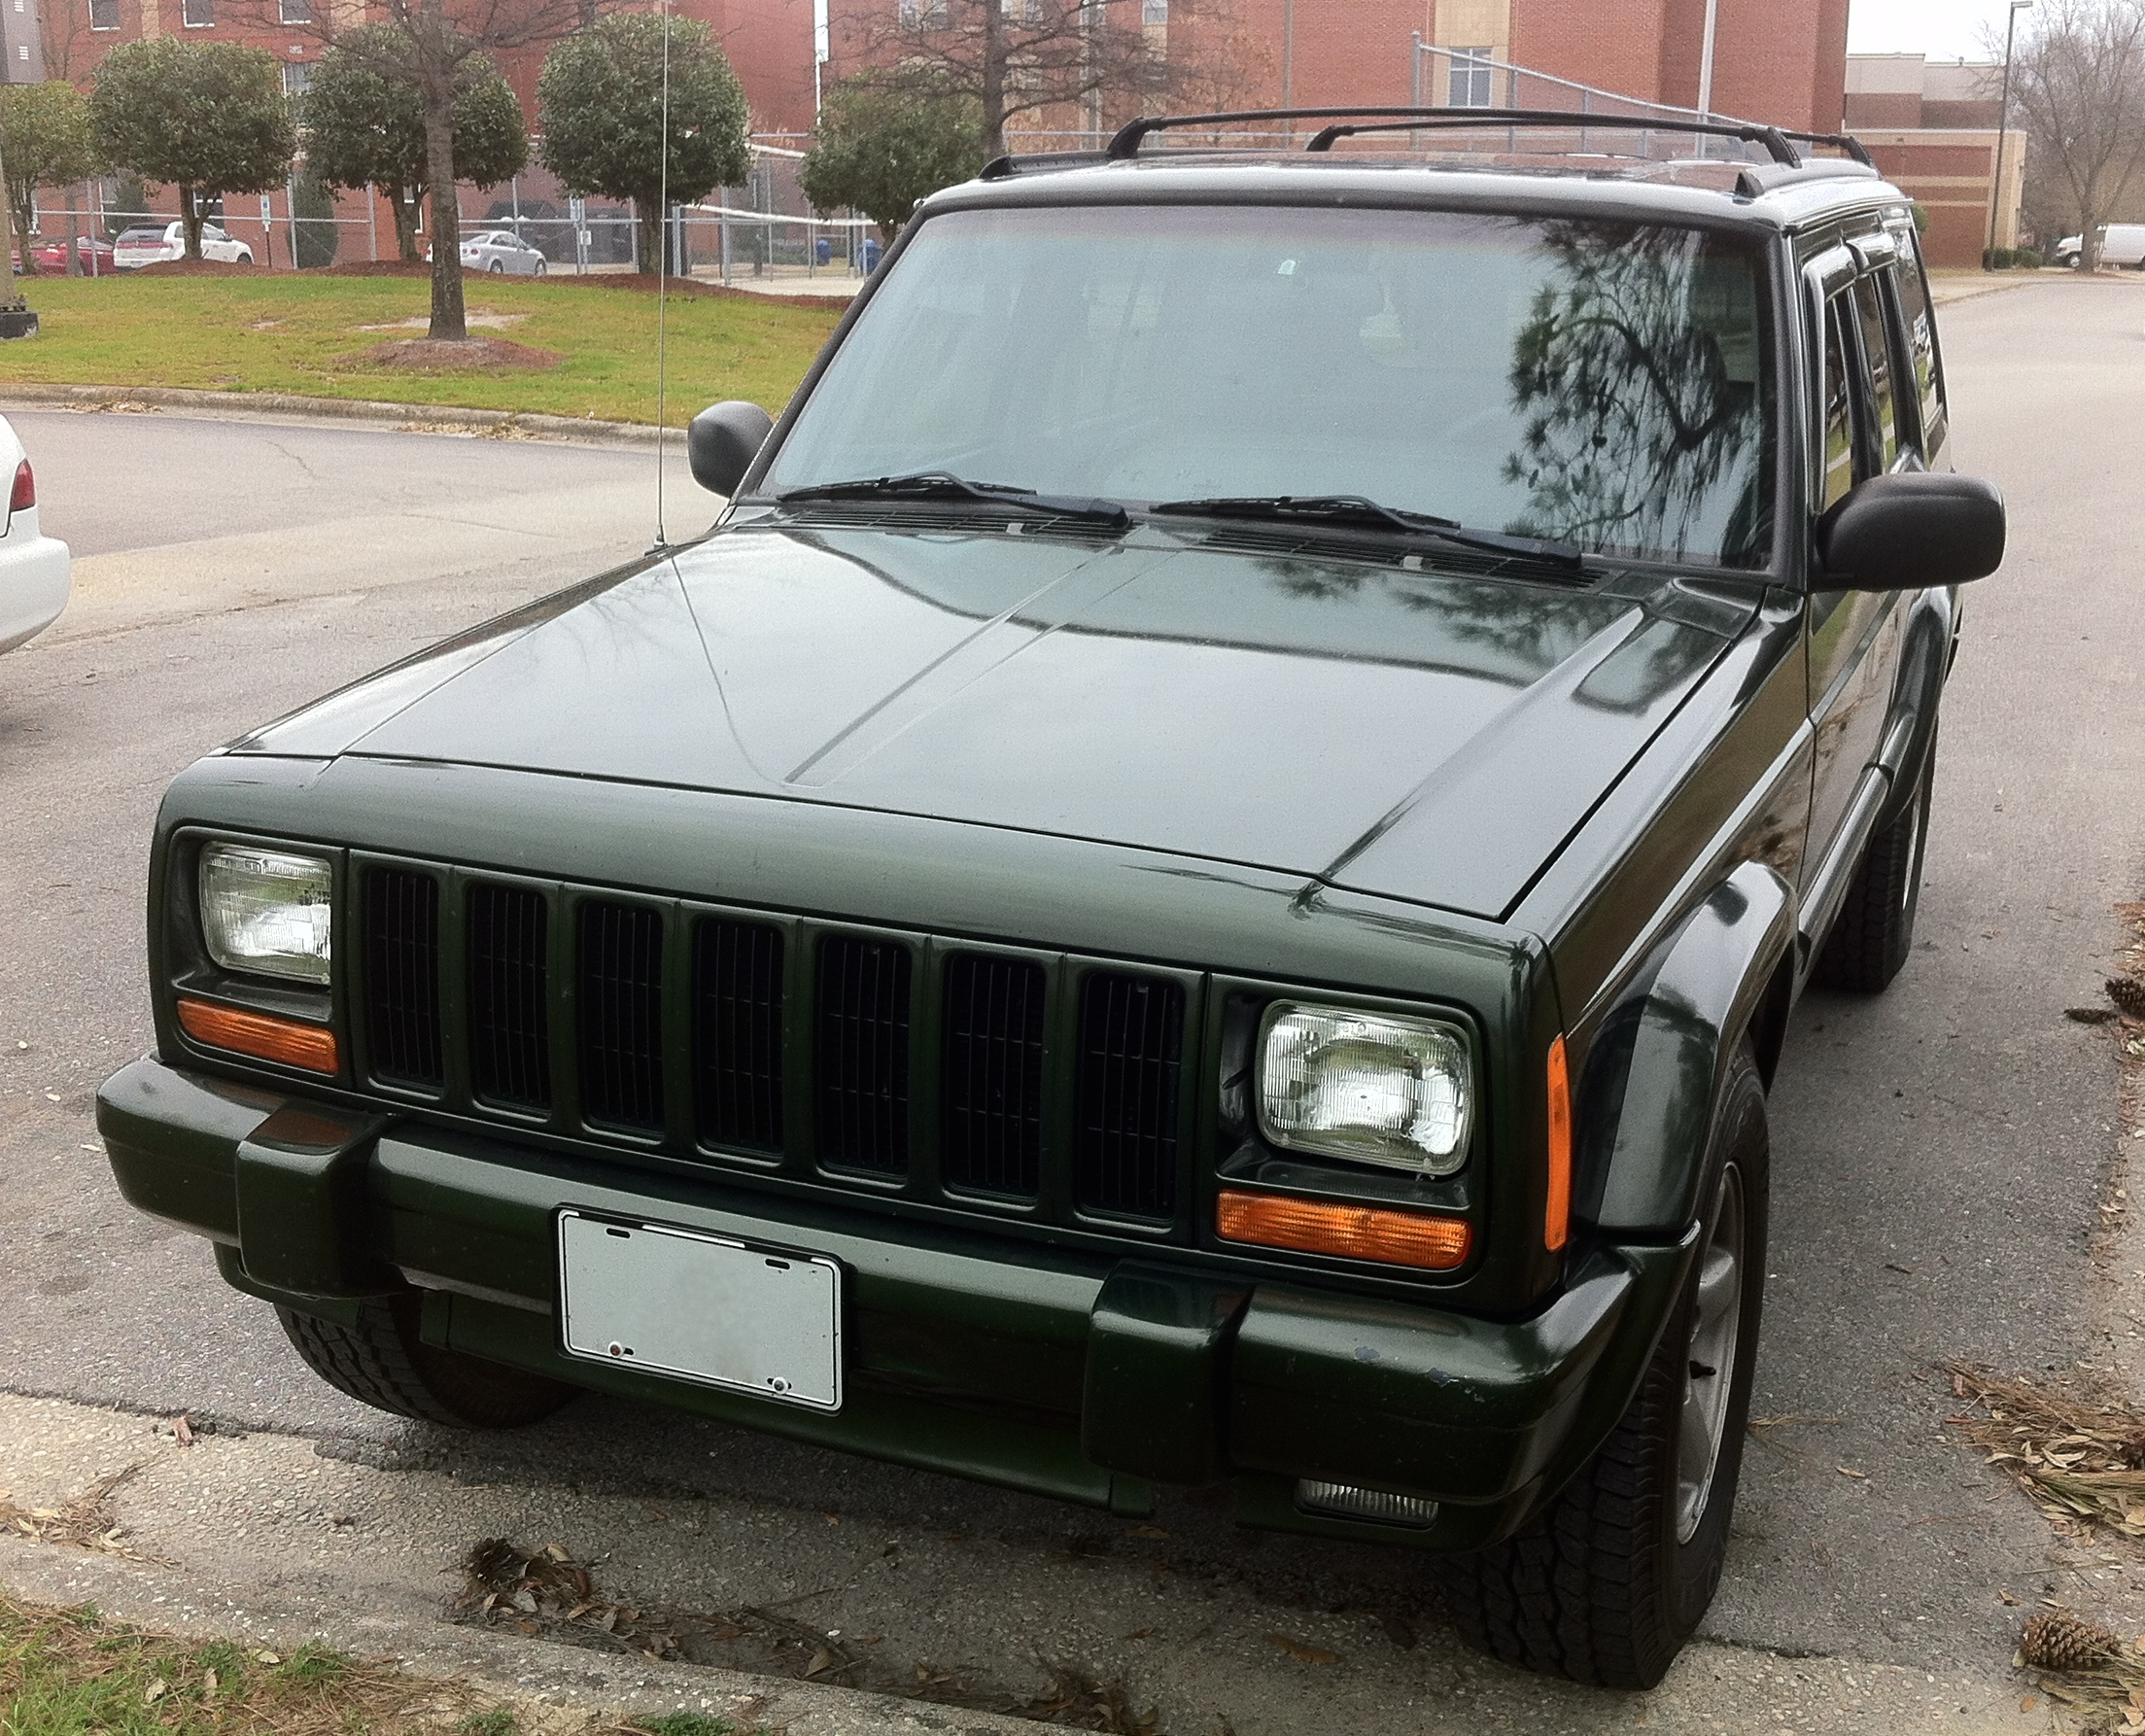 Jeep Cherokee Xj >> File:Jeep Cherokee XJ 4-door NC green front.jpg - Wikimedia Commons